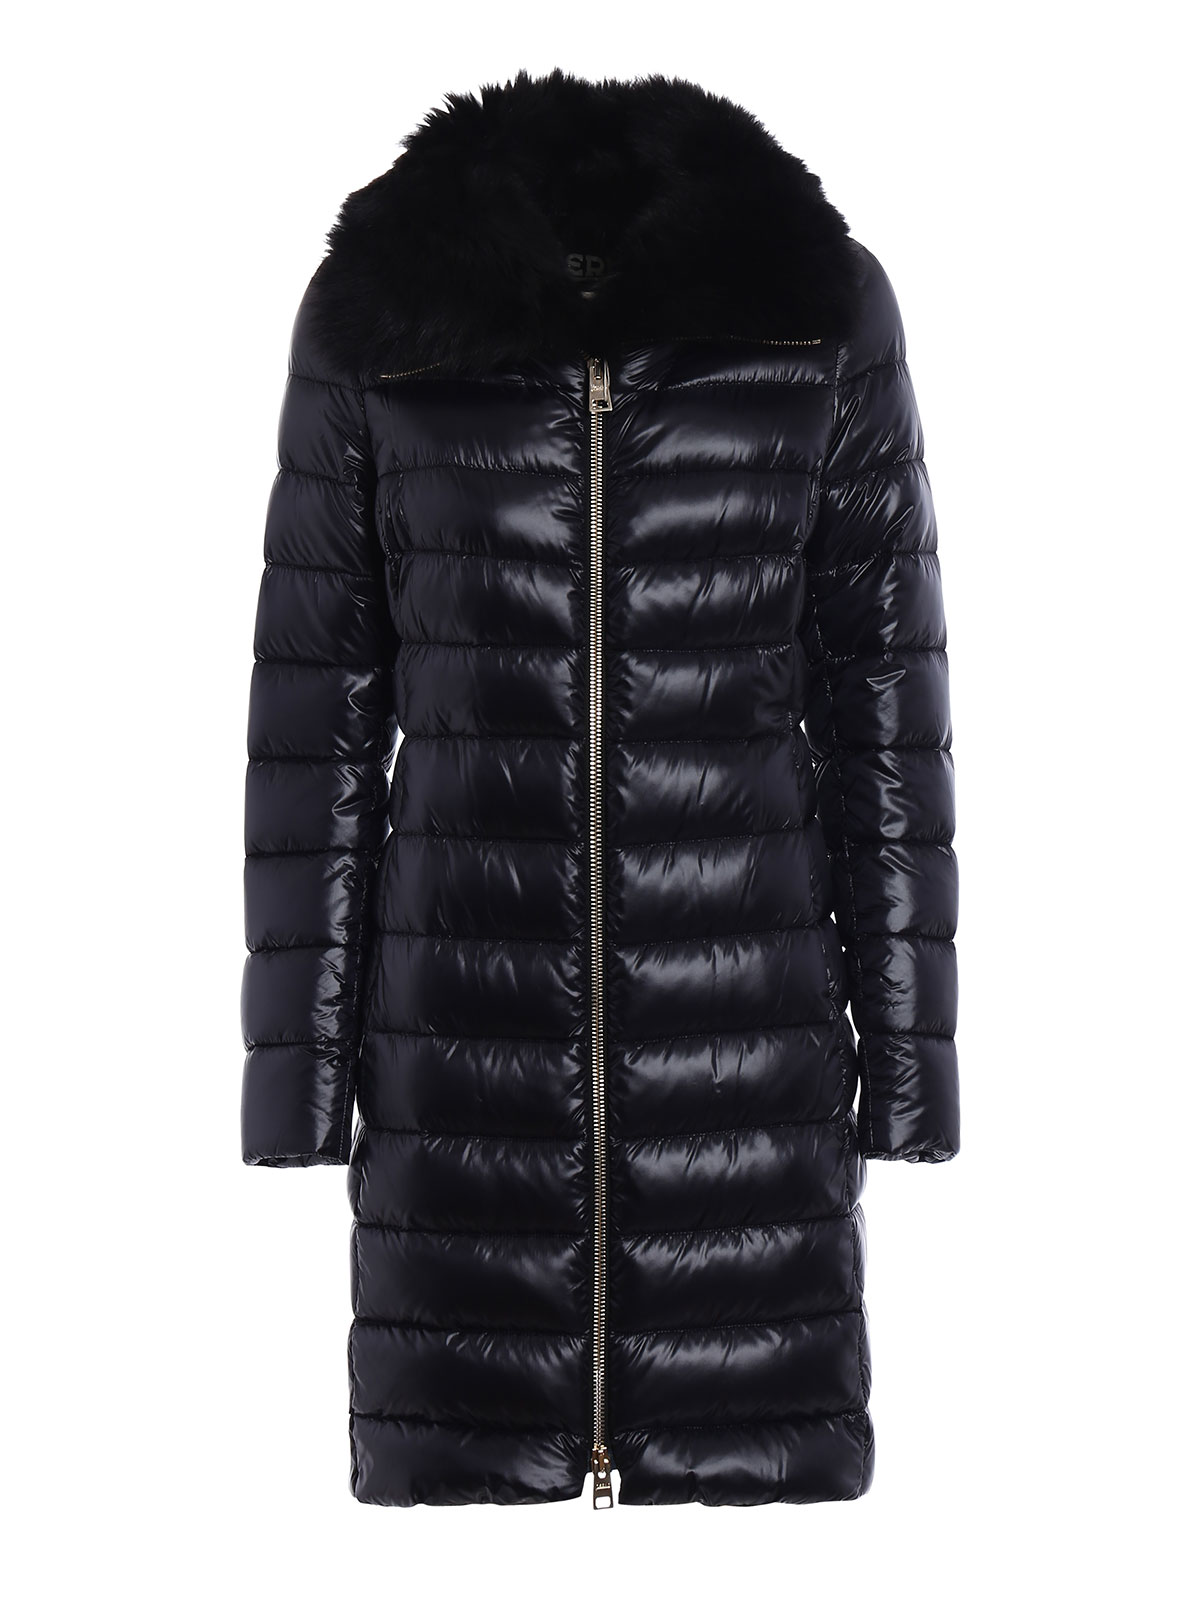 Maternity black luxe padded coat Save. Was £ Now £ Star by Julien Macdonald Black faux fur belted padded coat Save. Was £ Now £ Maine New England Plum duck down puffer coat Save. Was £ Now £ Dorothy Perkins Burgundy longline pack puffer jacket.